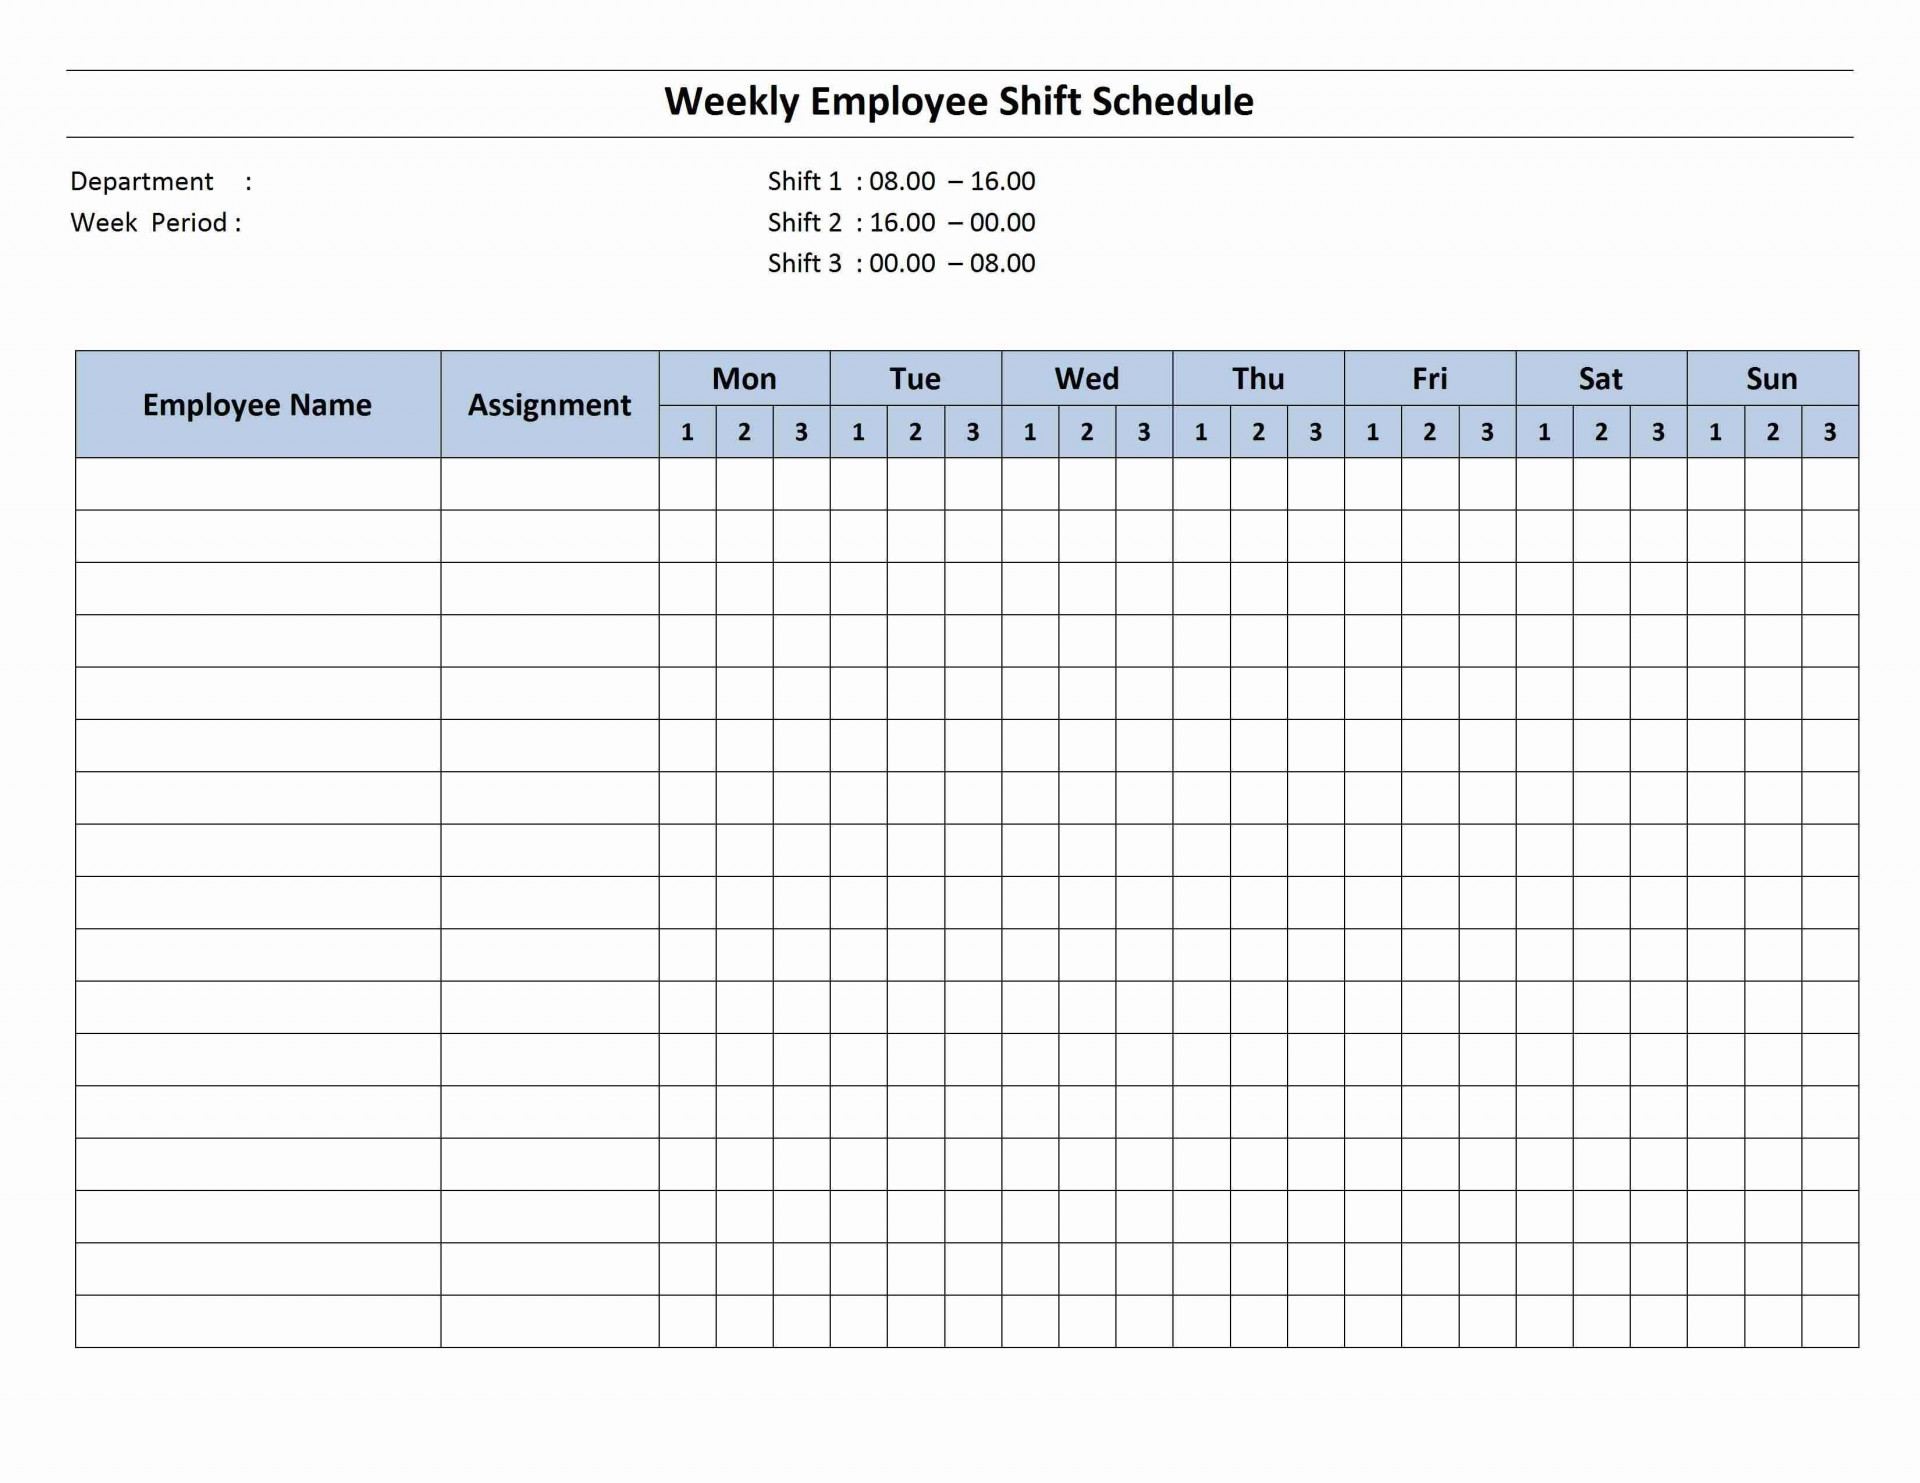 004 Archaicawful Monthly Employee Schedule Template Excel Highest Quality  Work Blank1920